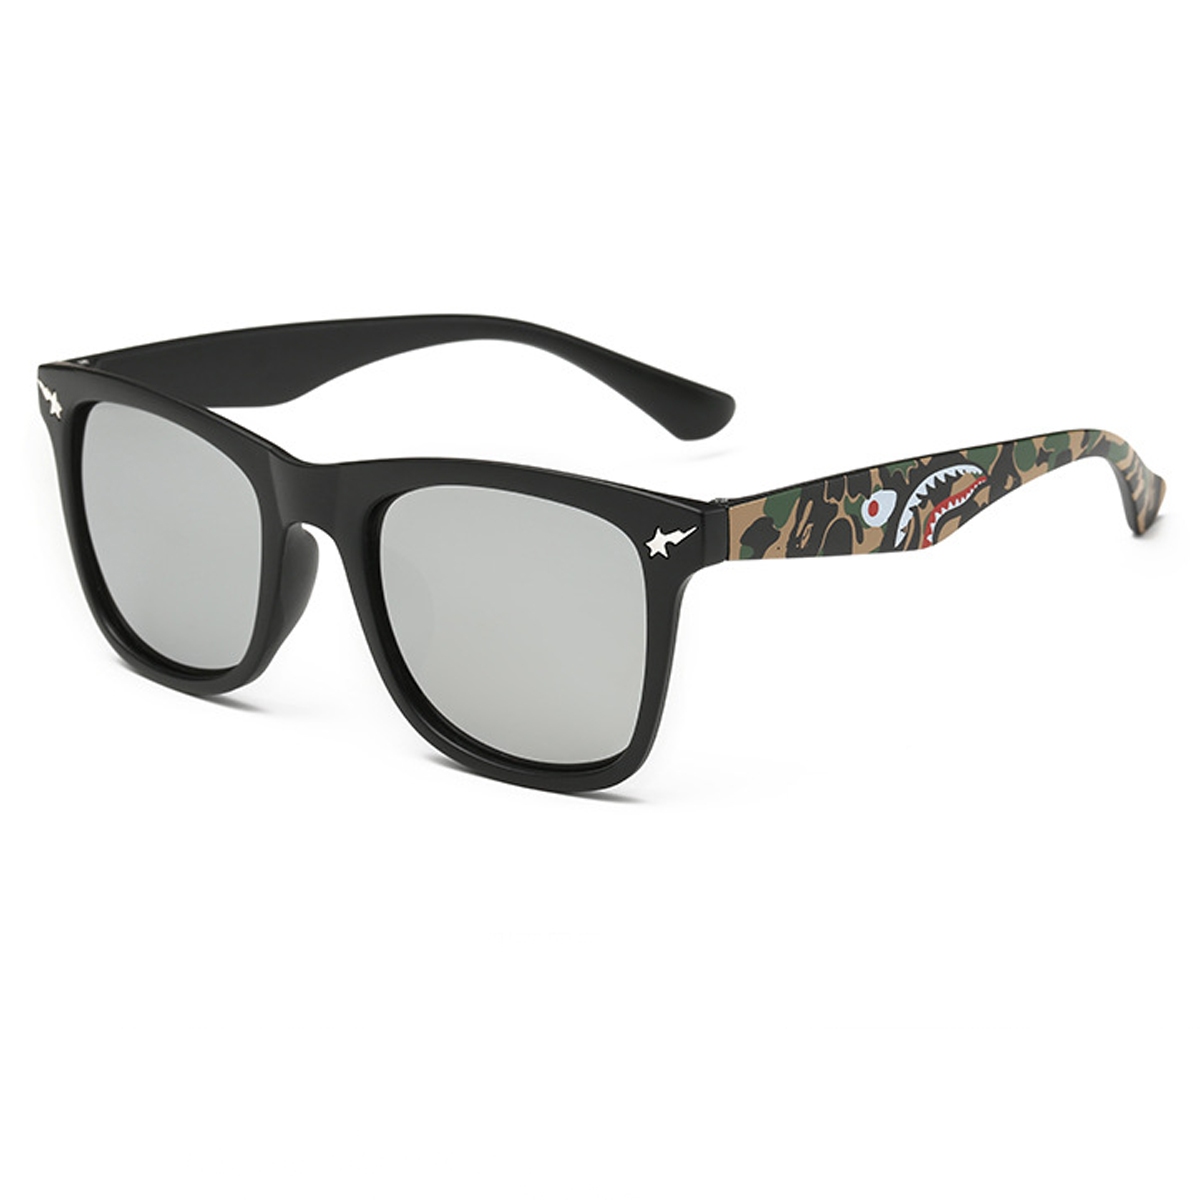 spy keaton eyegles frame only metal army camo